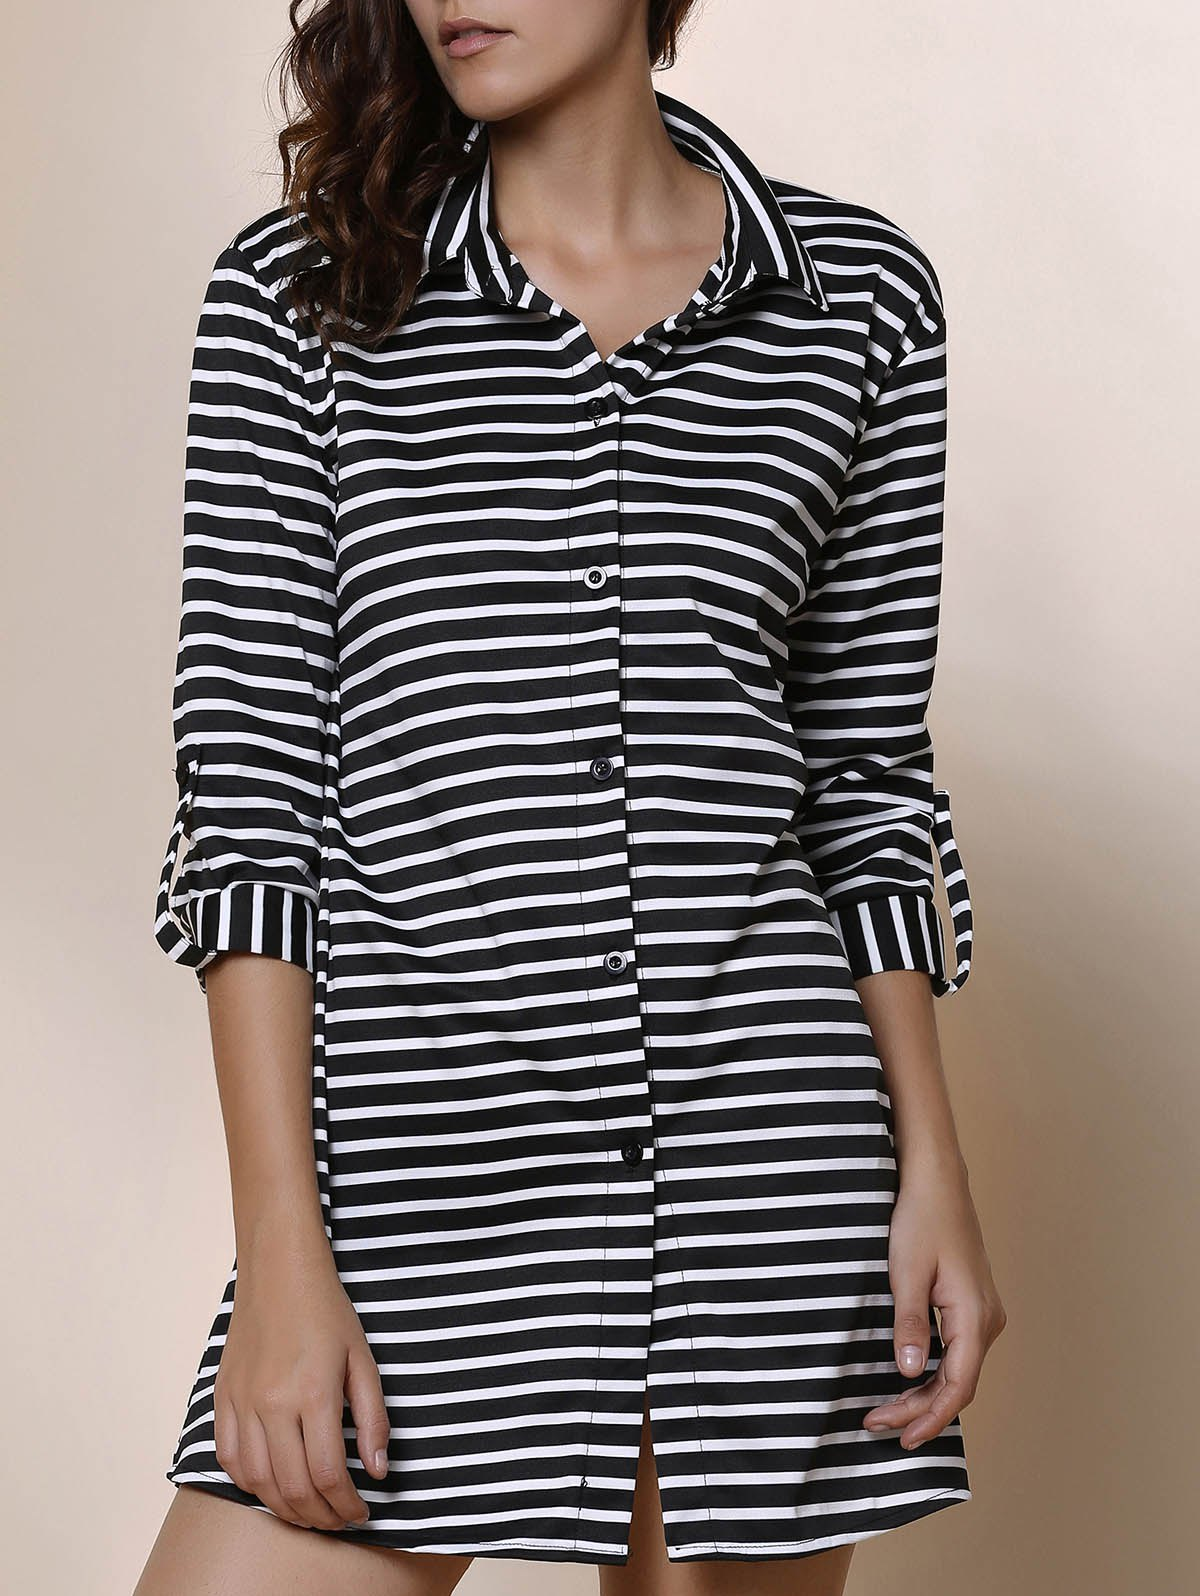 Fancy Simple Shirt Collar Striped Long Sleeve Blouse For Women